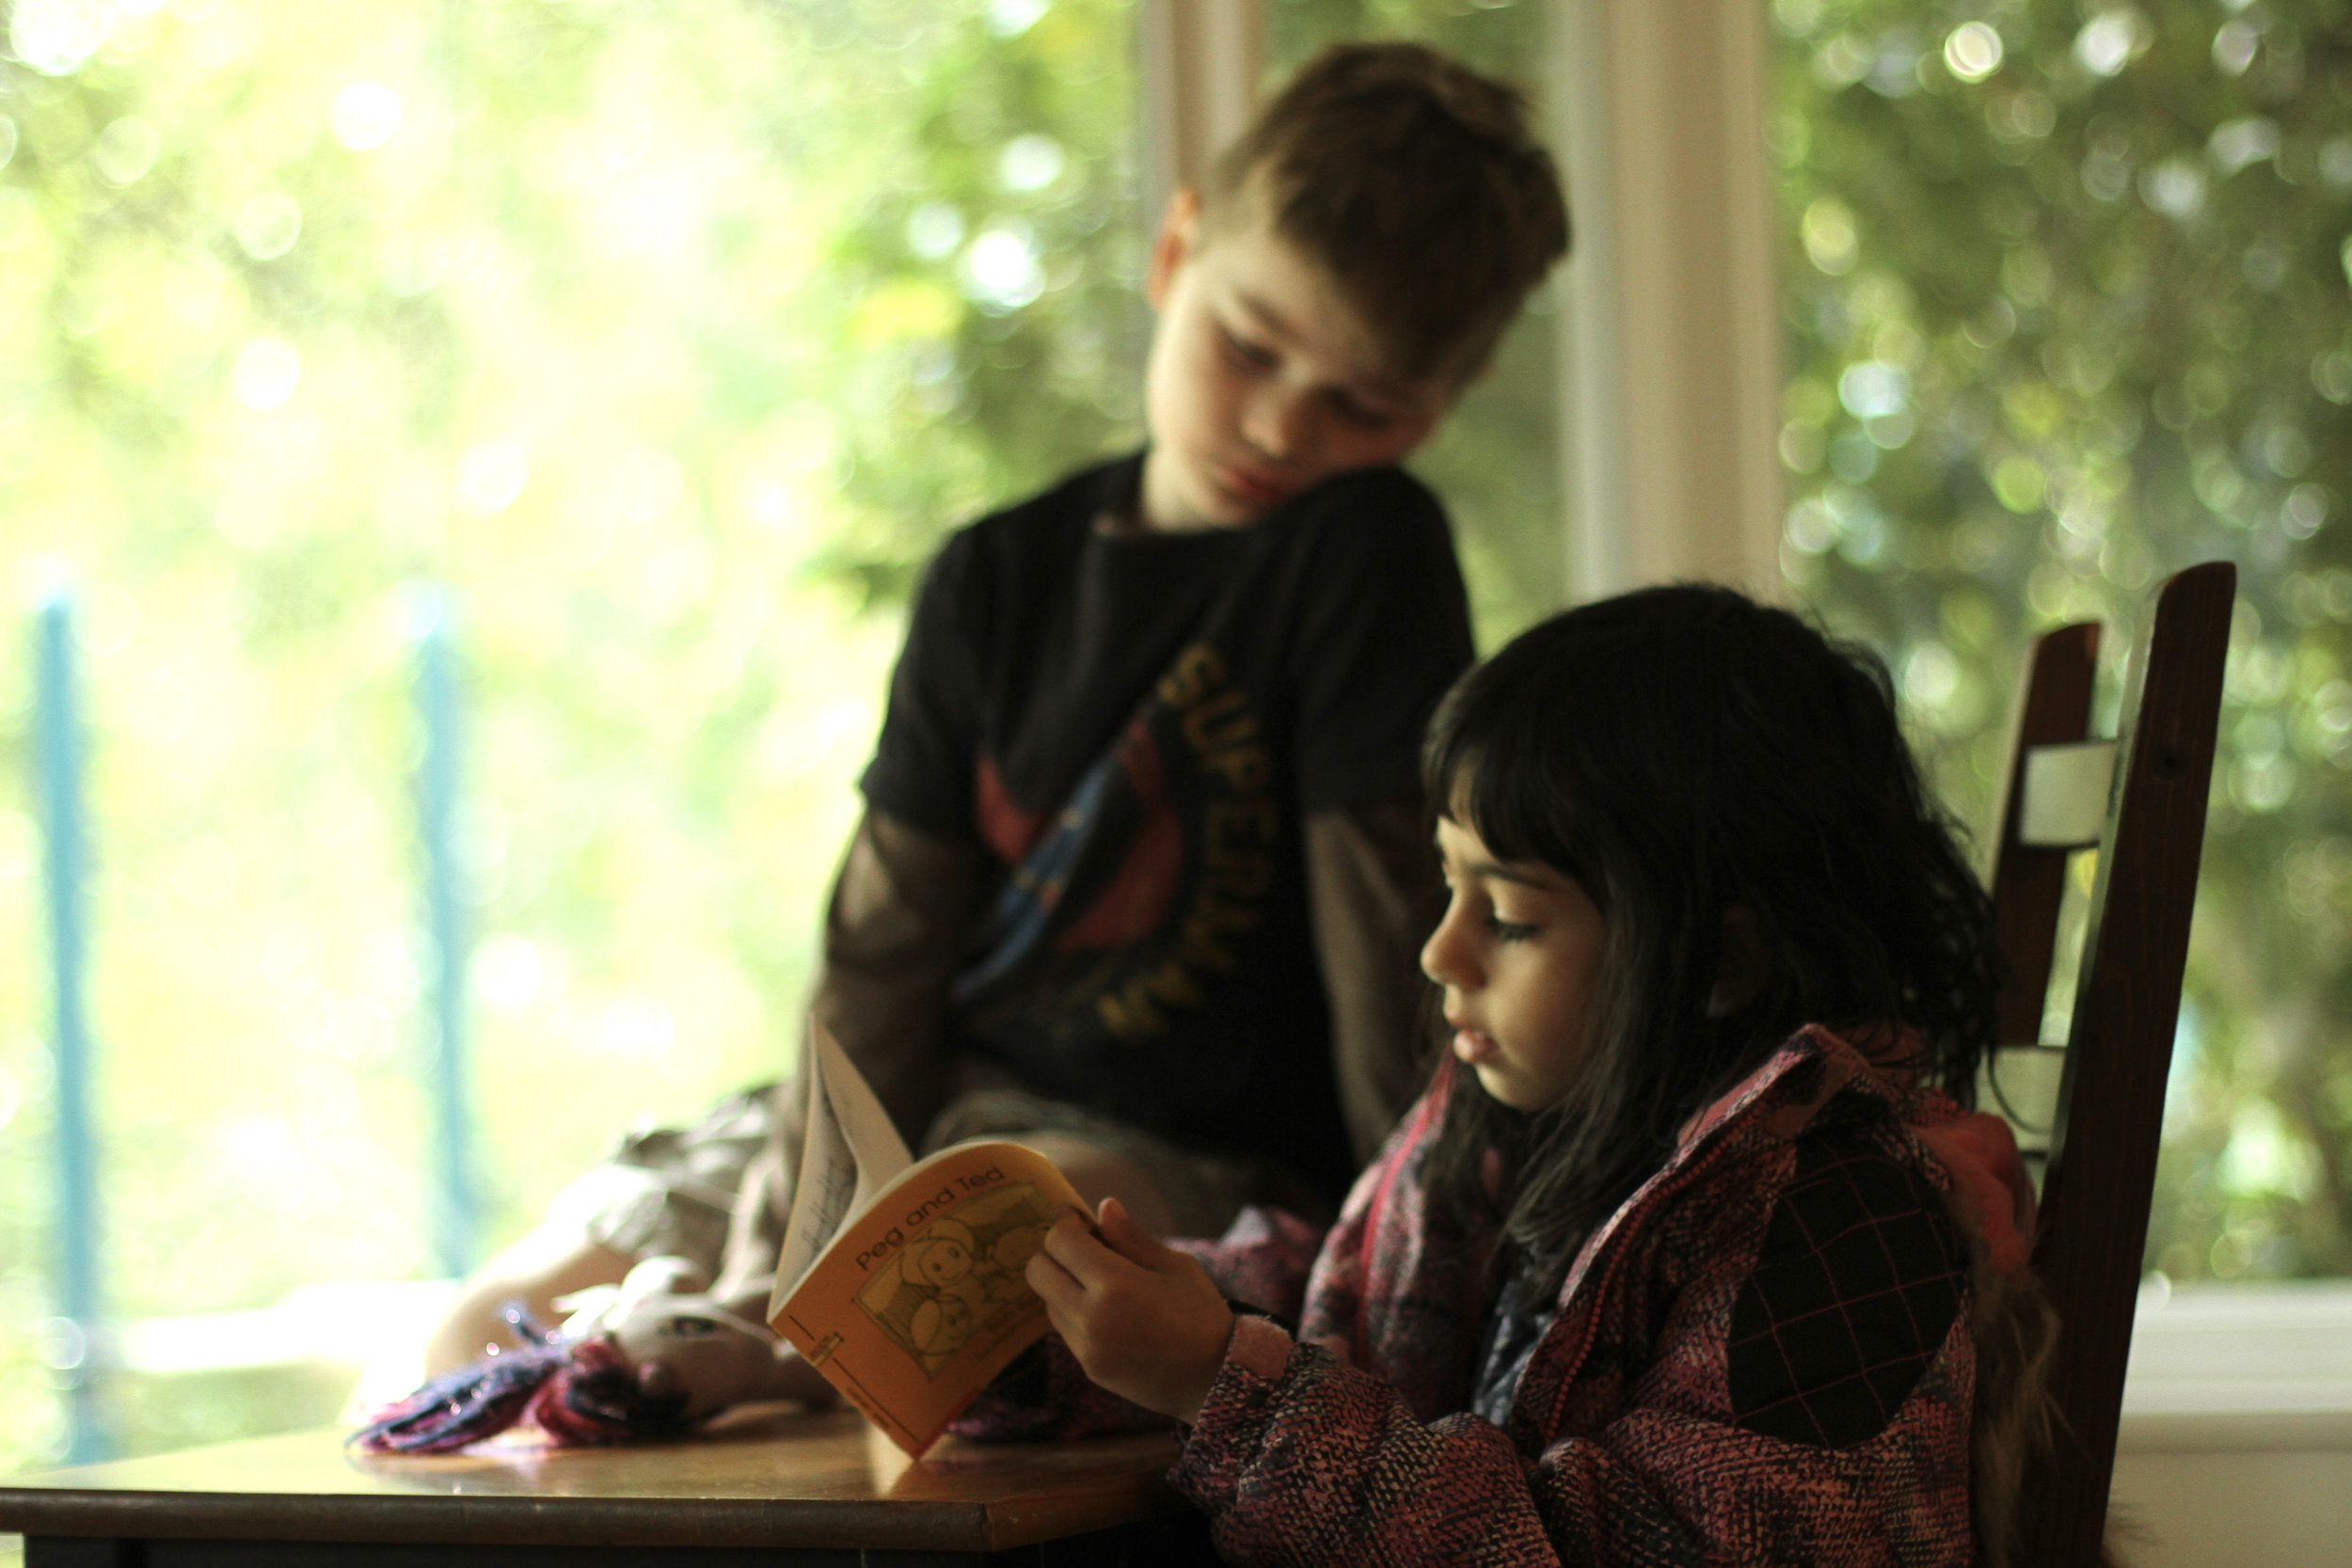 Two young students reading a book together.